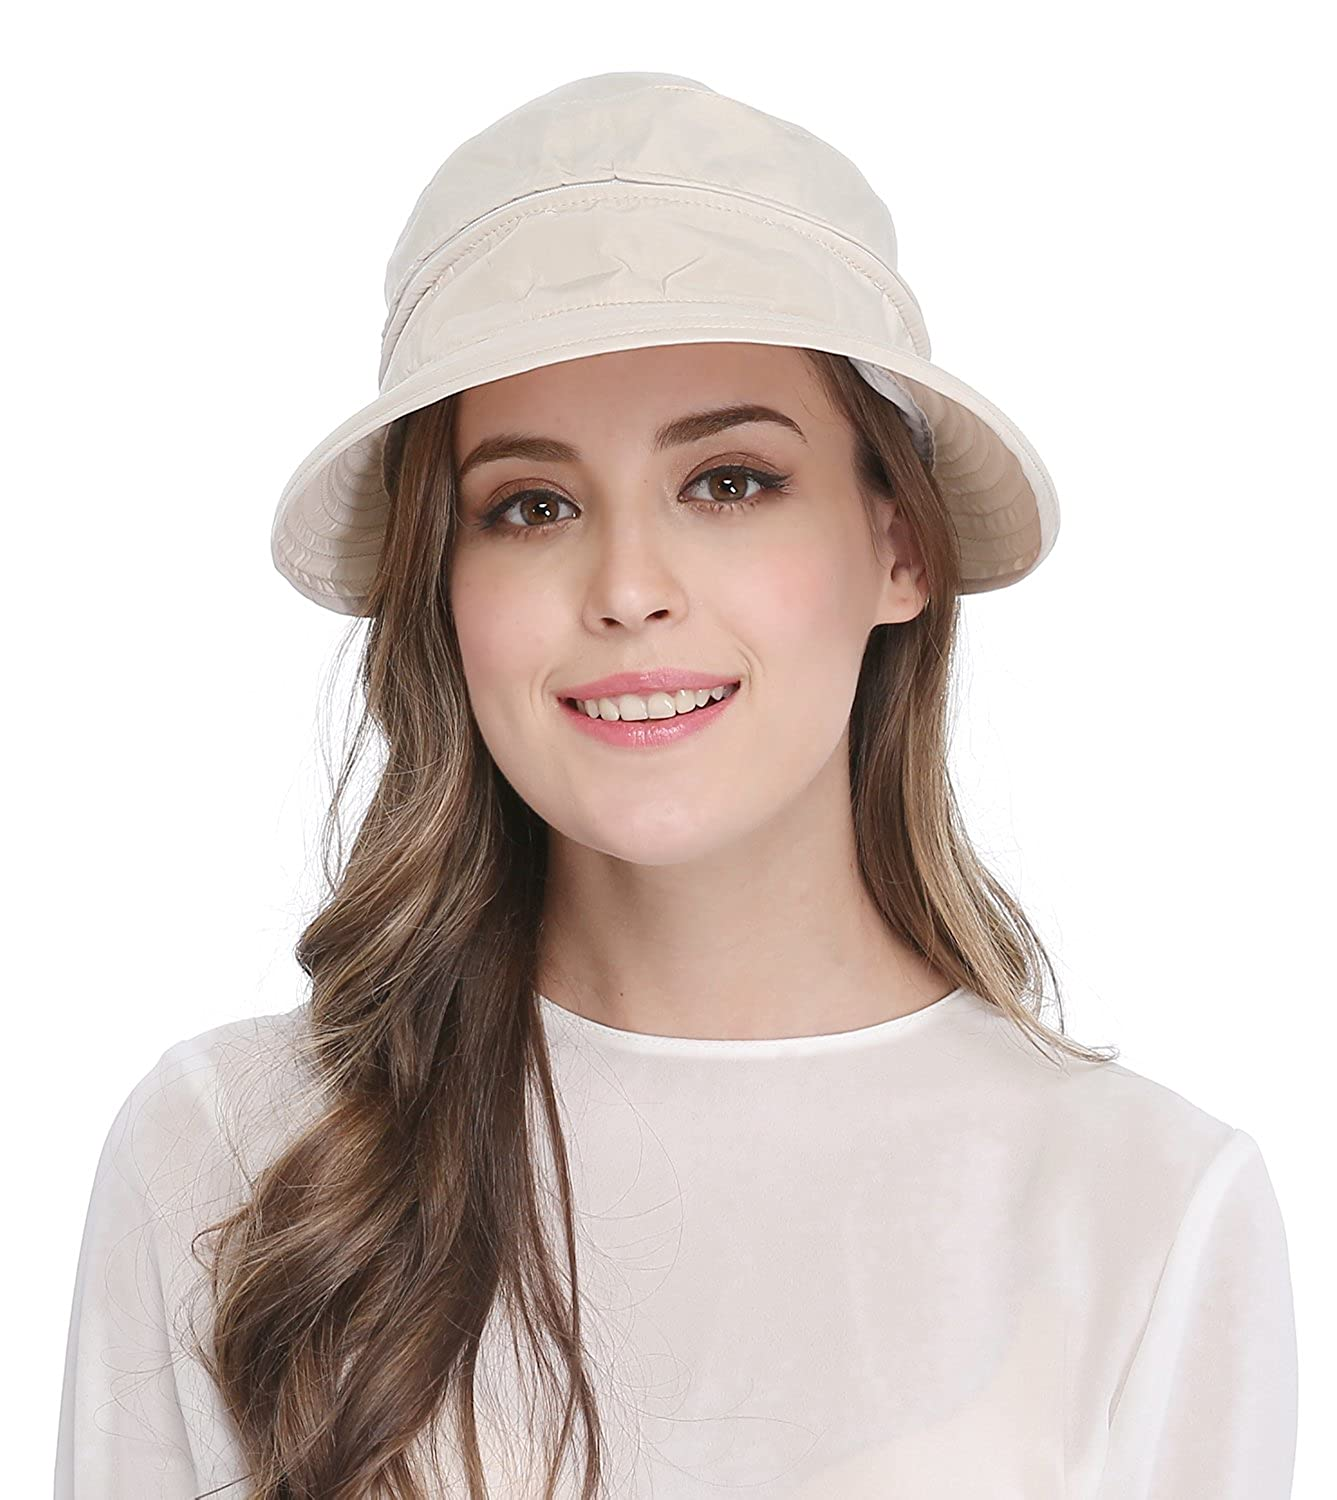 cf508ca44c5 Women s Big Wide Brim Sun Hat UV Protection Visor Sun Hat Lightweight Golf  Folding Hat